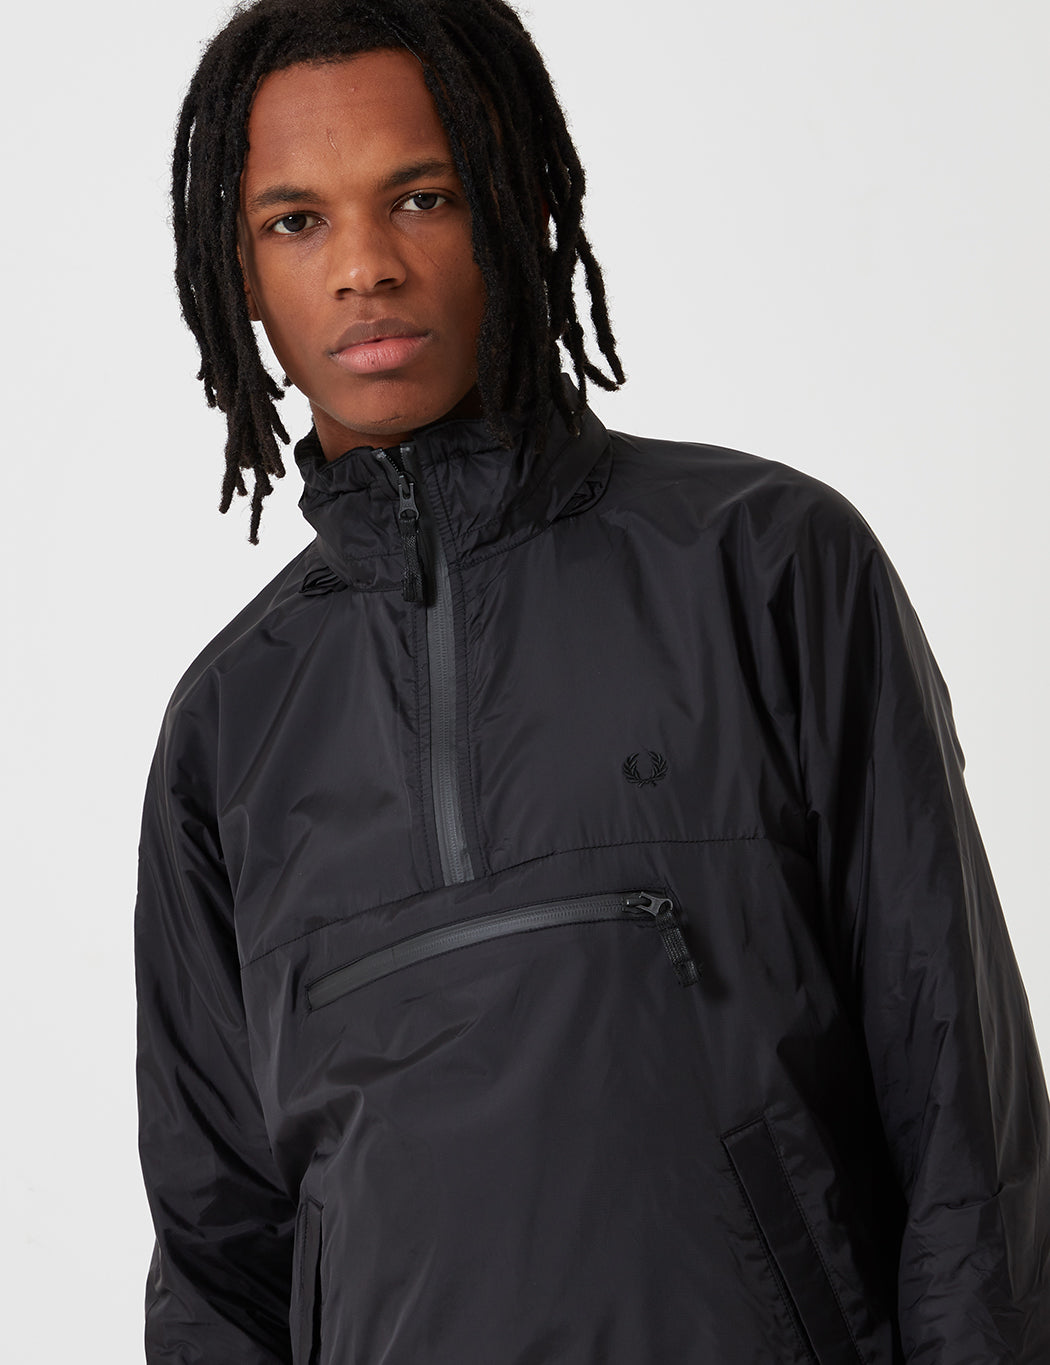 e7b40d7b1 Fred Perry Half Zip Brentham Jacket - Graphite Grey | URBAN EXCESS.